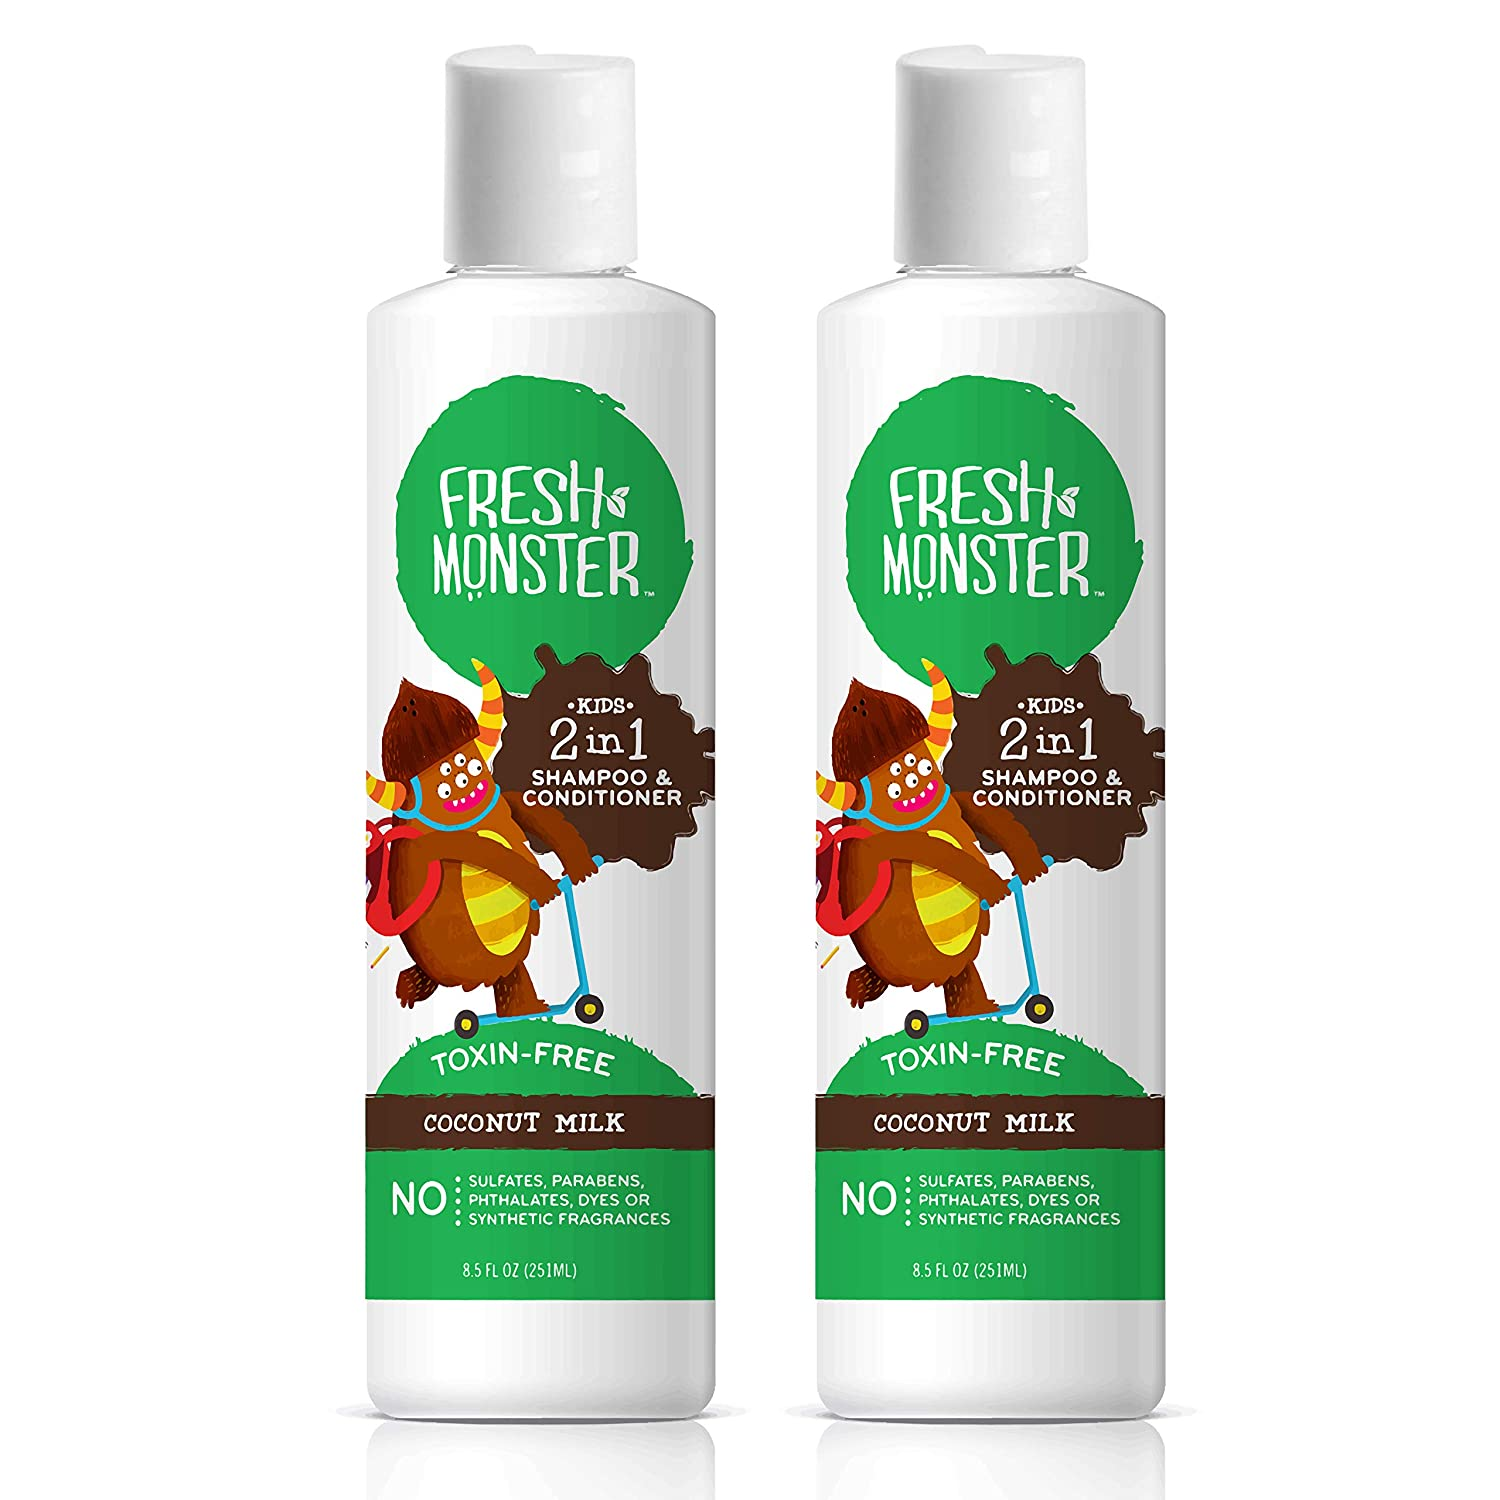 Fresh Monster Toxin-Free Hypoallergenic 2-in-1 Kids Shampoo & Conditioner, Coconut (2 Pack, 8.5oz/each)